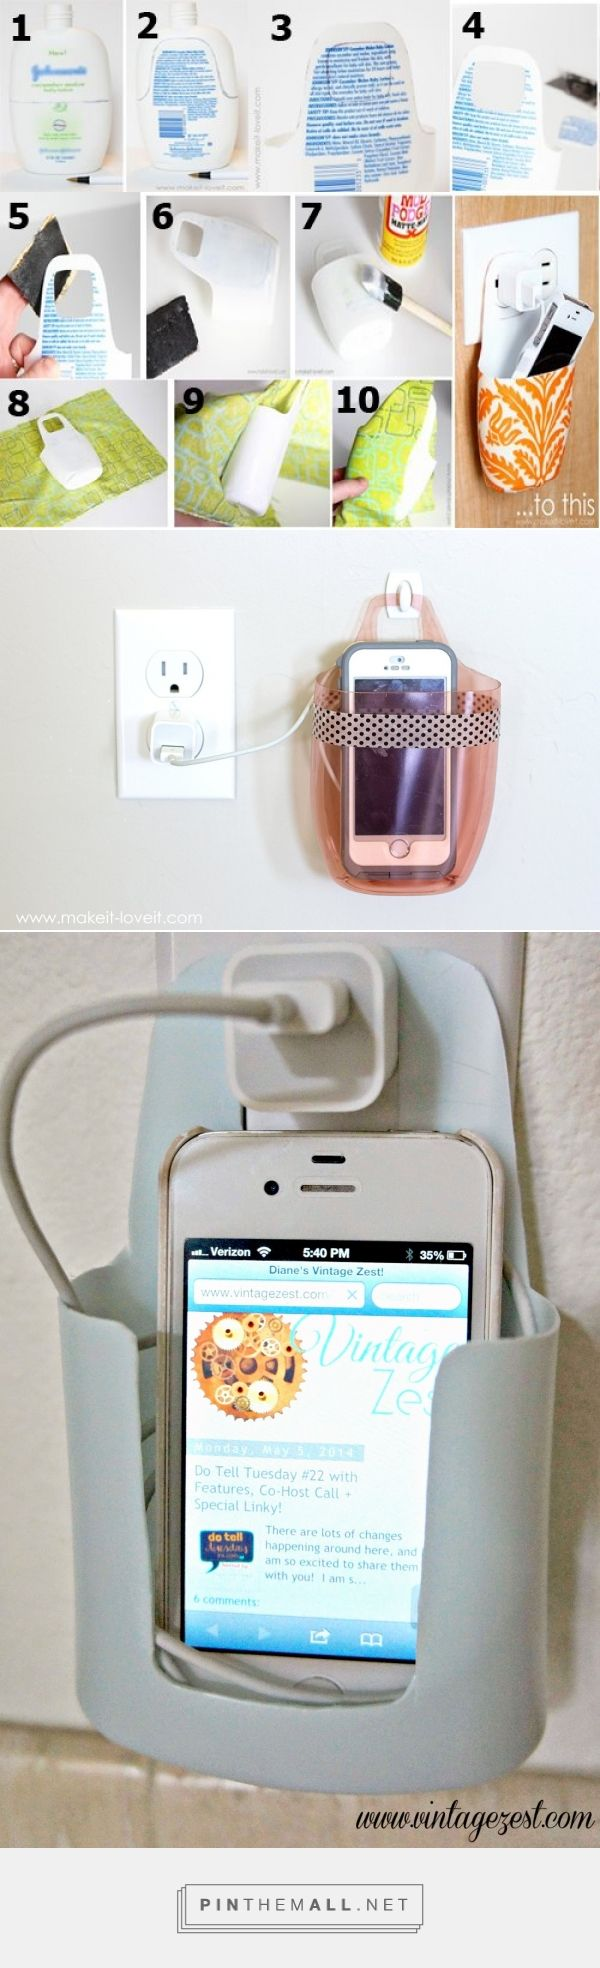 Repurpose an empty lotion container into a cell phone holder while charging. 2nd Pic: http://www.makeit-loveit.com/2015/06/charging-cell-phone-holder-from-a-plastic-bottle.html 3rd pic: http://www.vintagezest.com/2014/05/cell-phone-charger-holder-upcycled-from.html